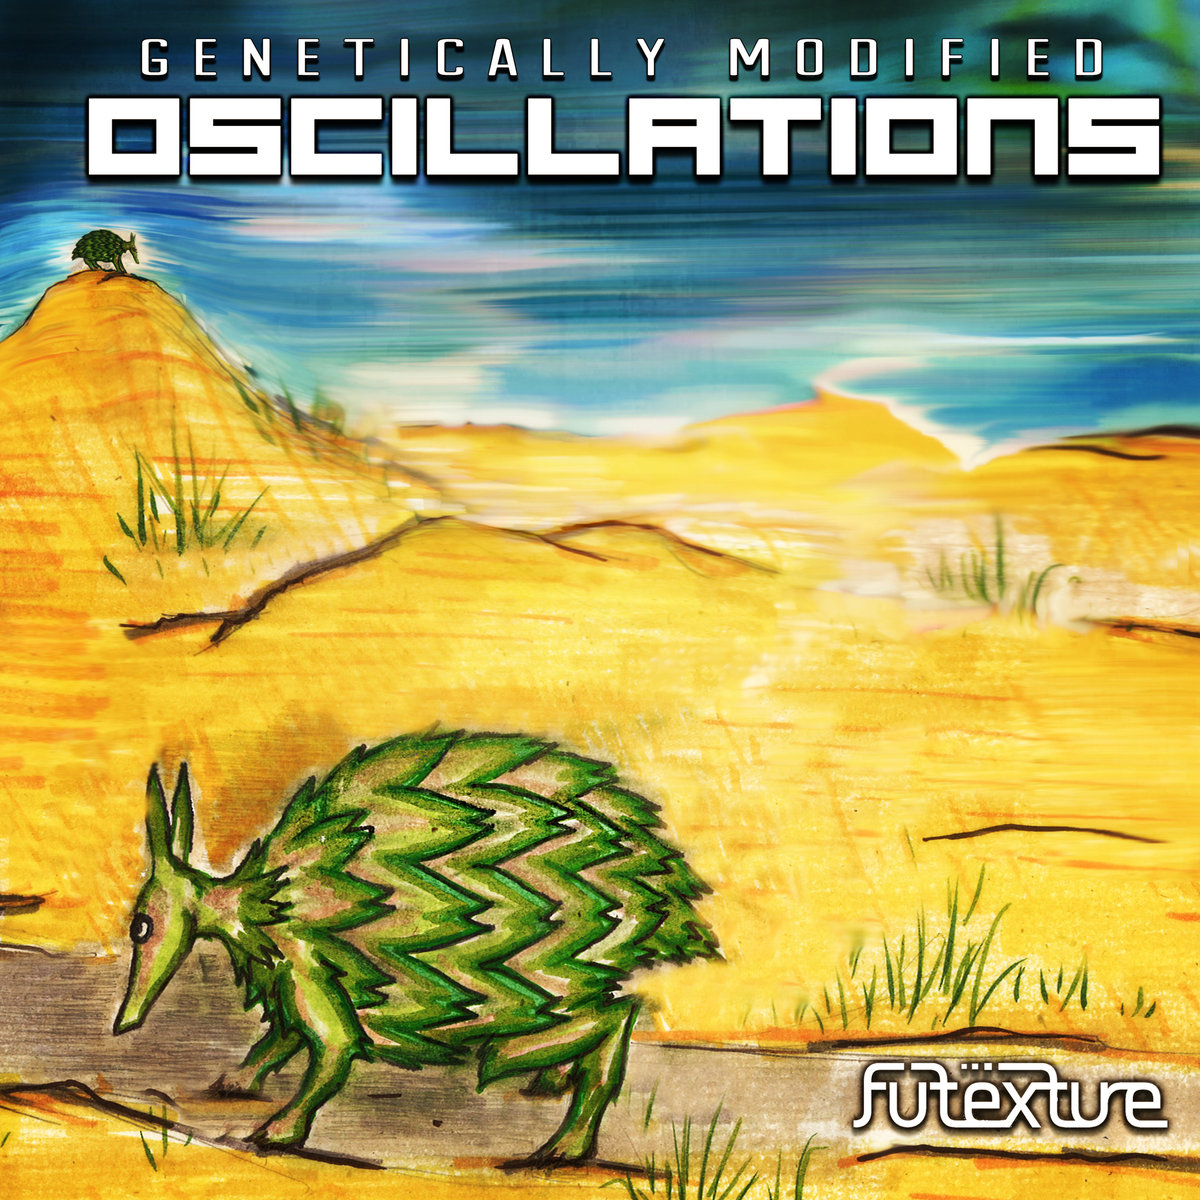 Futexture - Eggplantelope @ 'Genetically Modified Oscillations' album (bass, breaks)